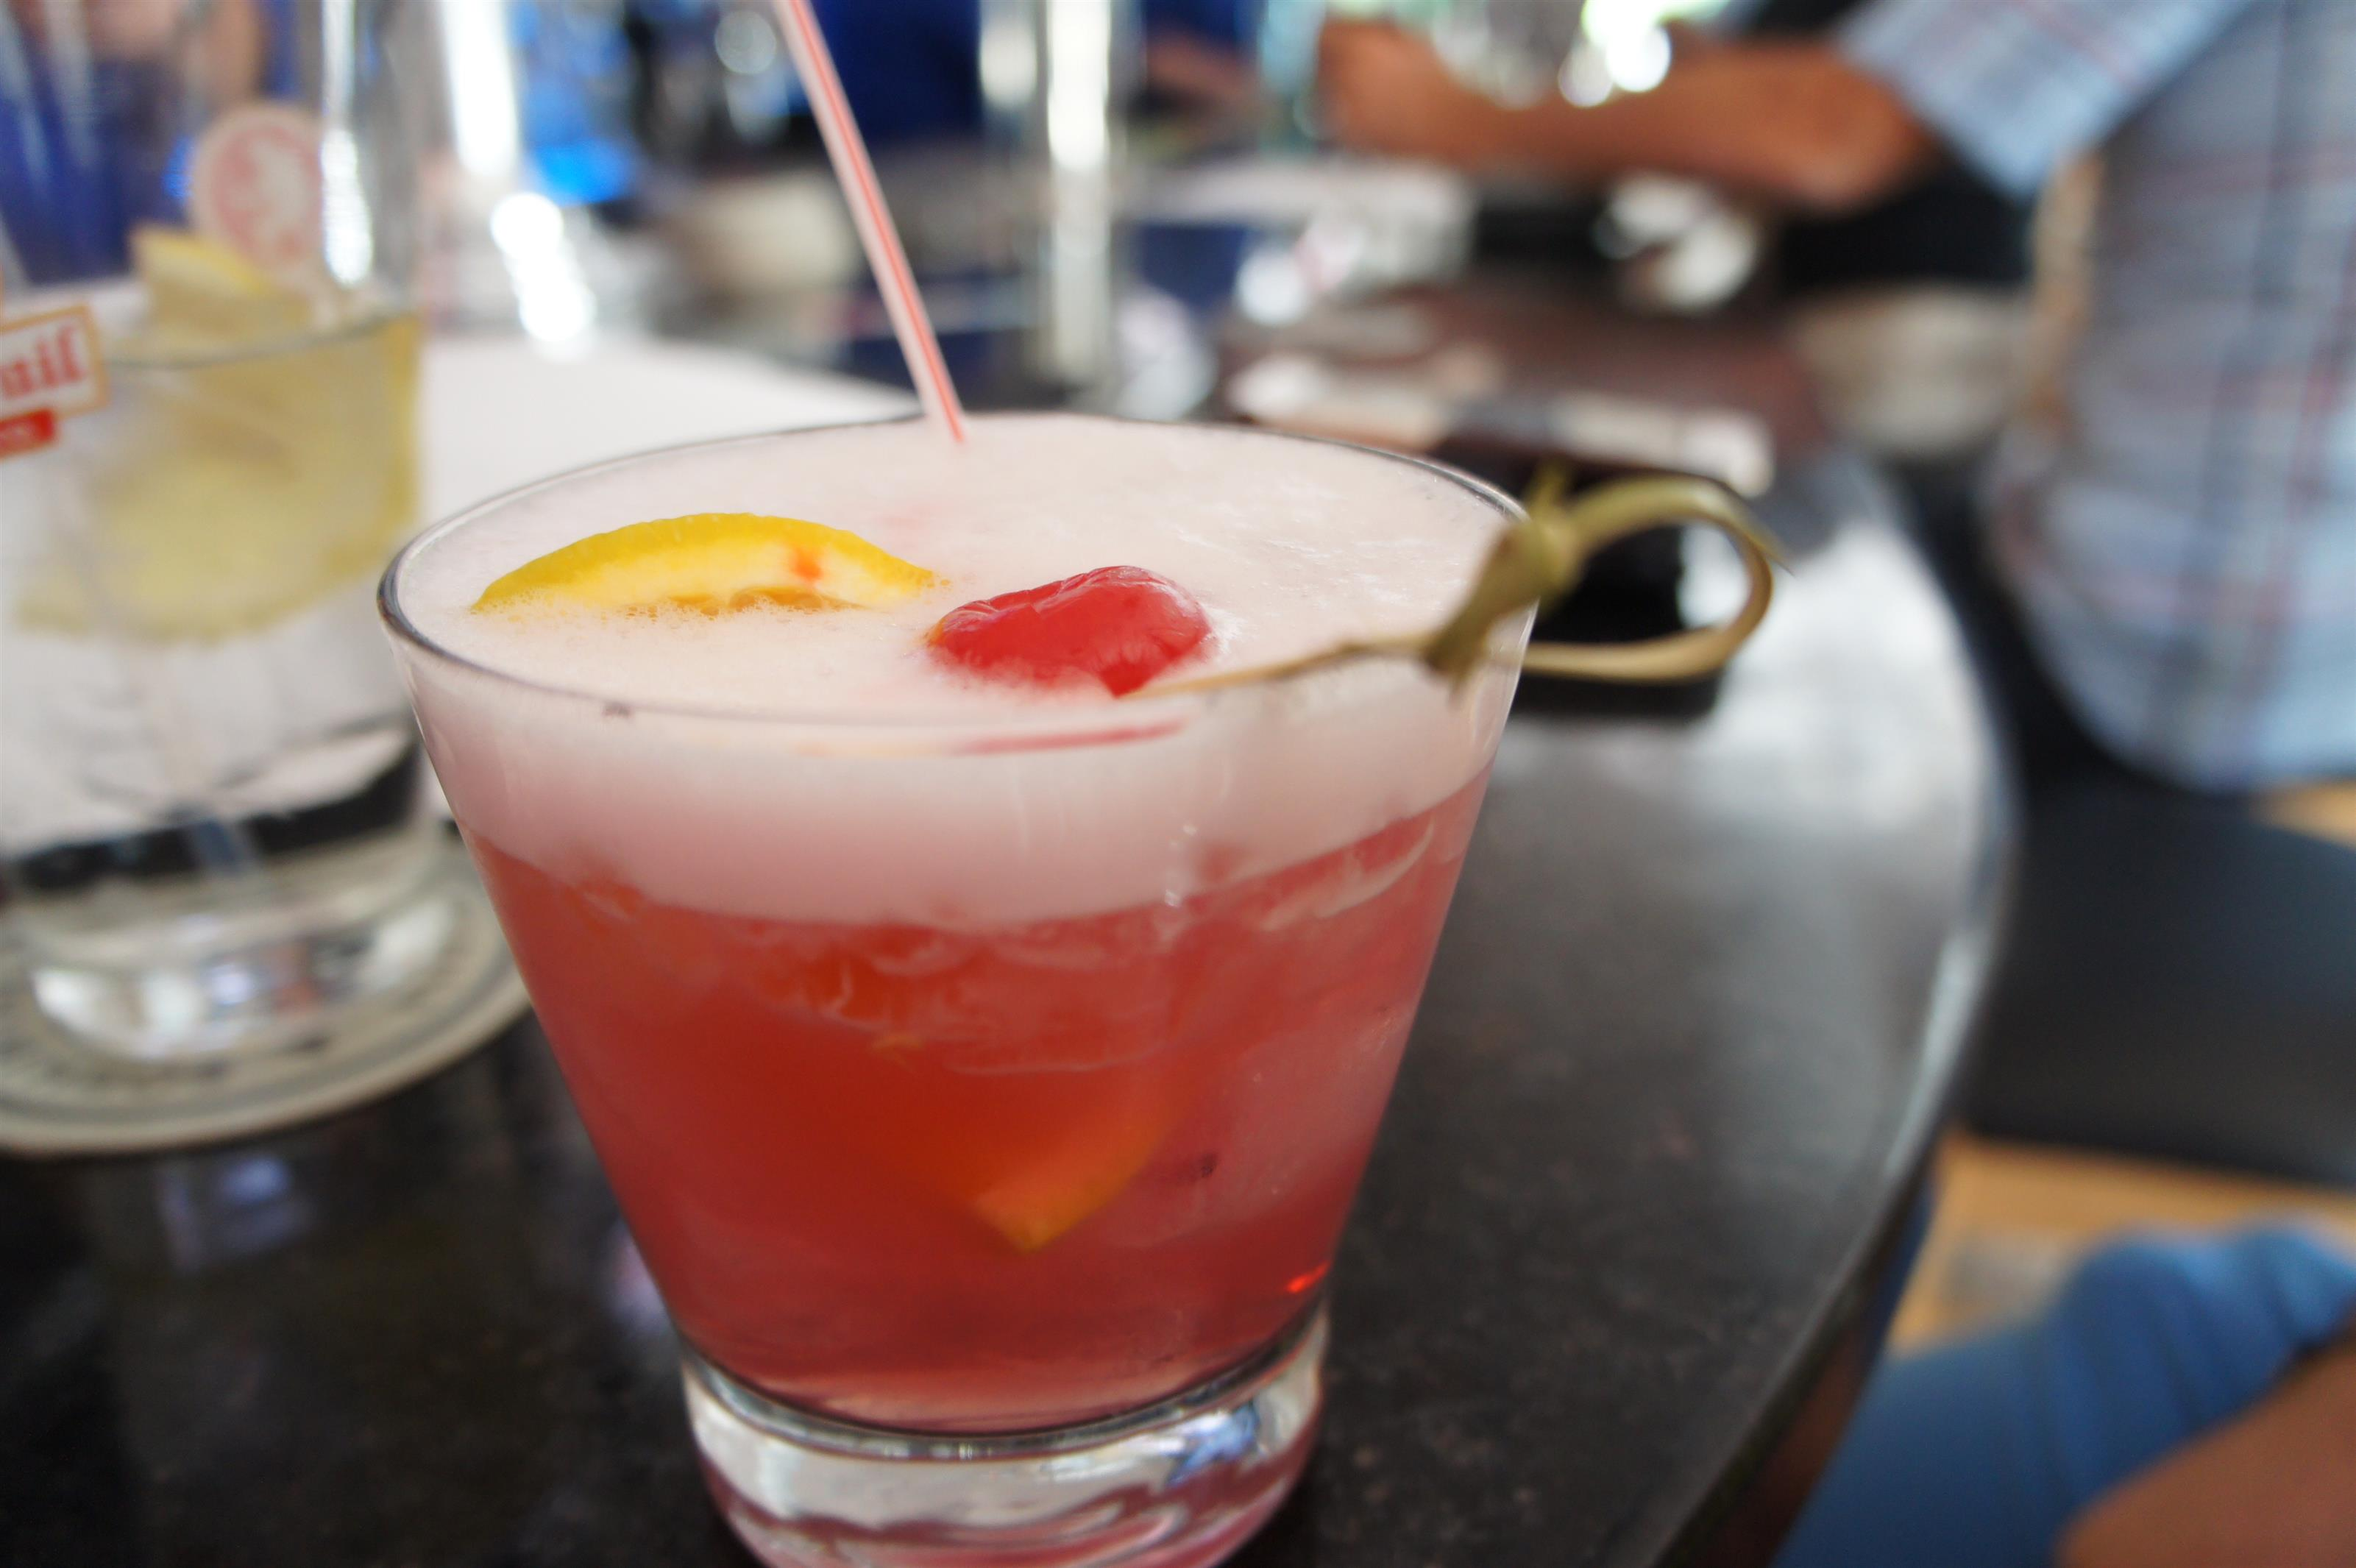 Pink cocktail drink garnished with a cherry and a lemon wedge